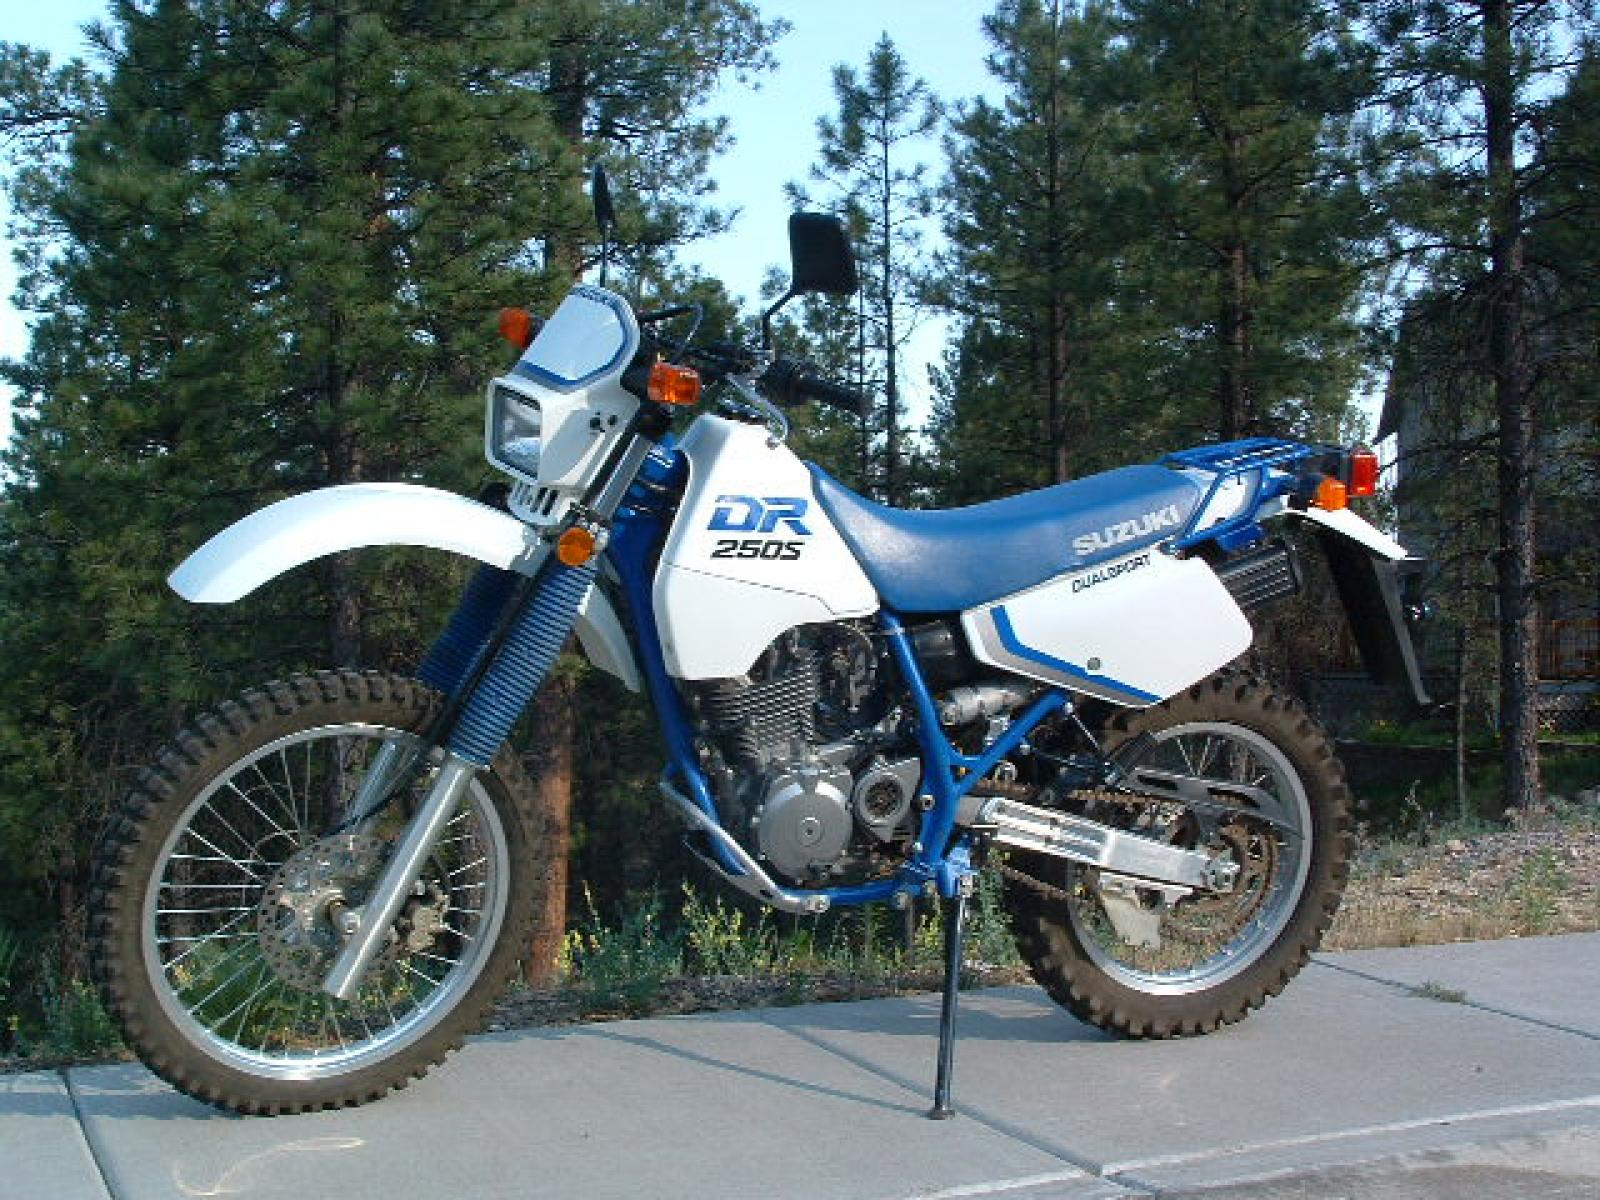 1989 suzuki dr 250 s pics specs and information. Black Bedroom Furniture Sets. Home Design Ideas